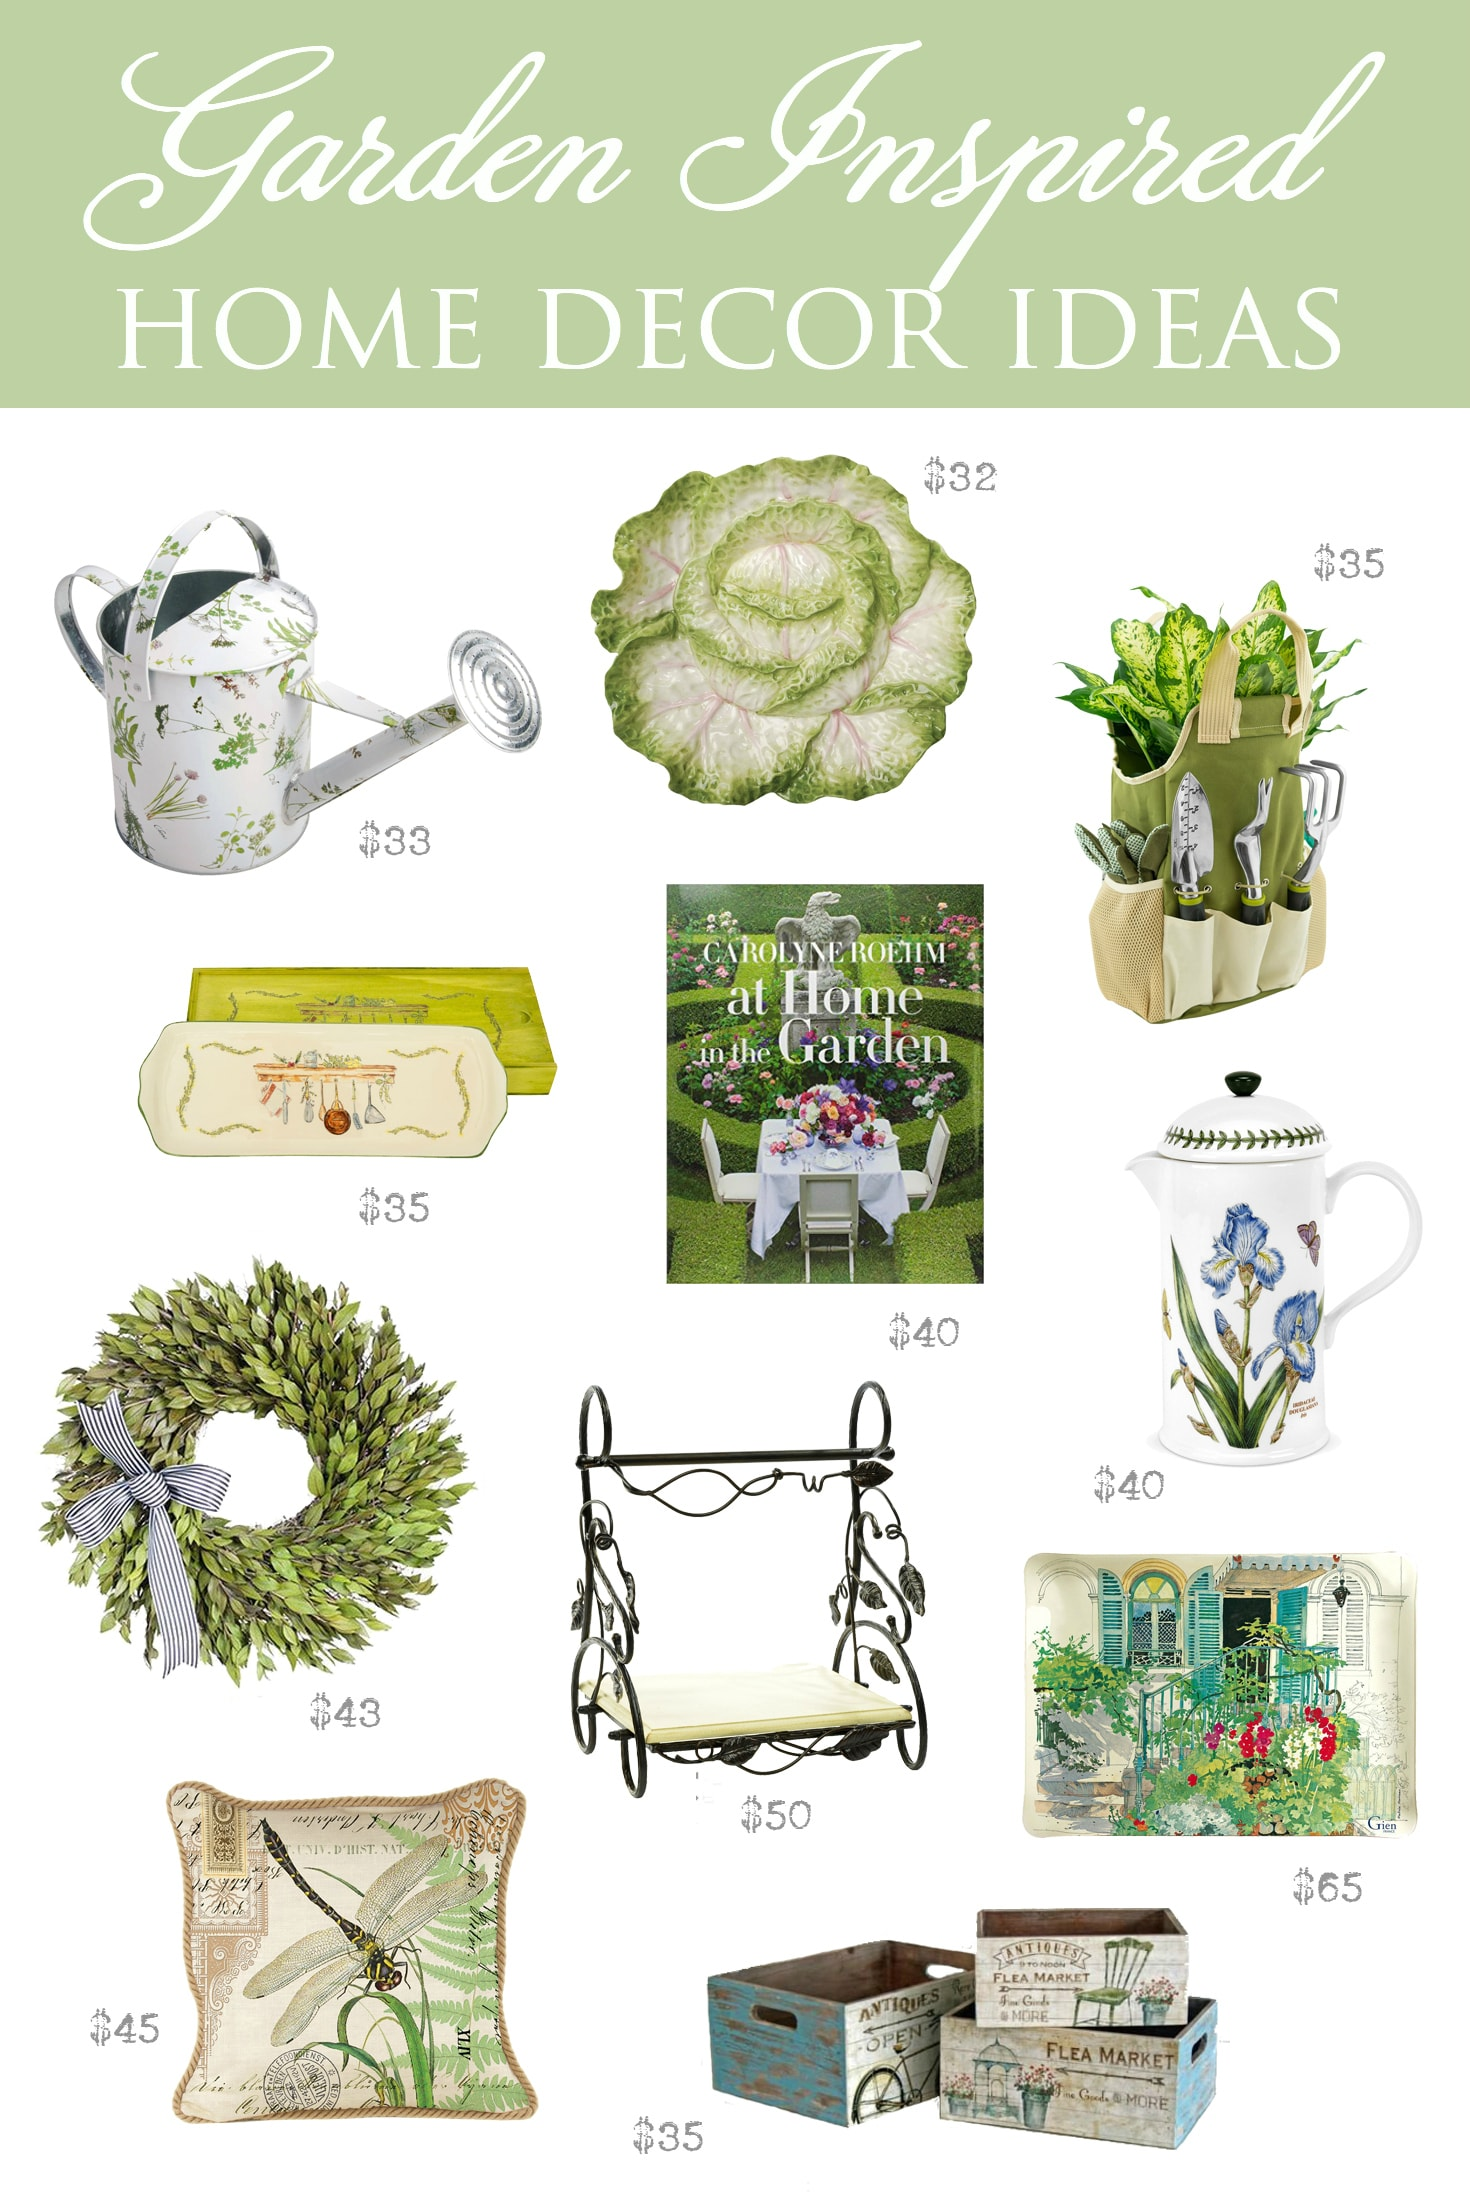 Garden Inspired Home Decor Ideas | Designthusiasm.com